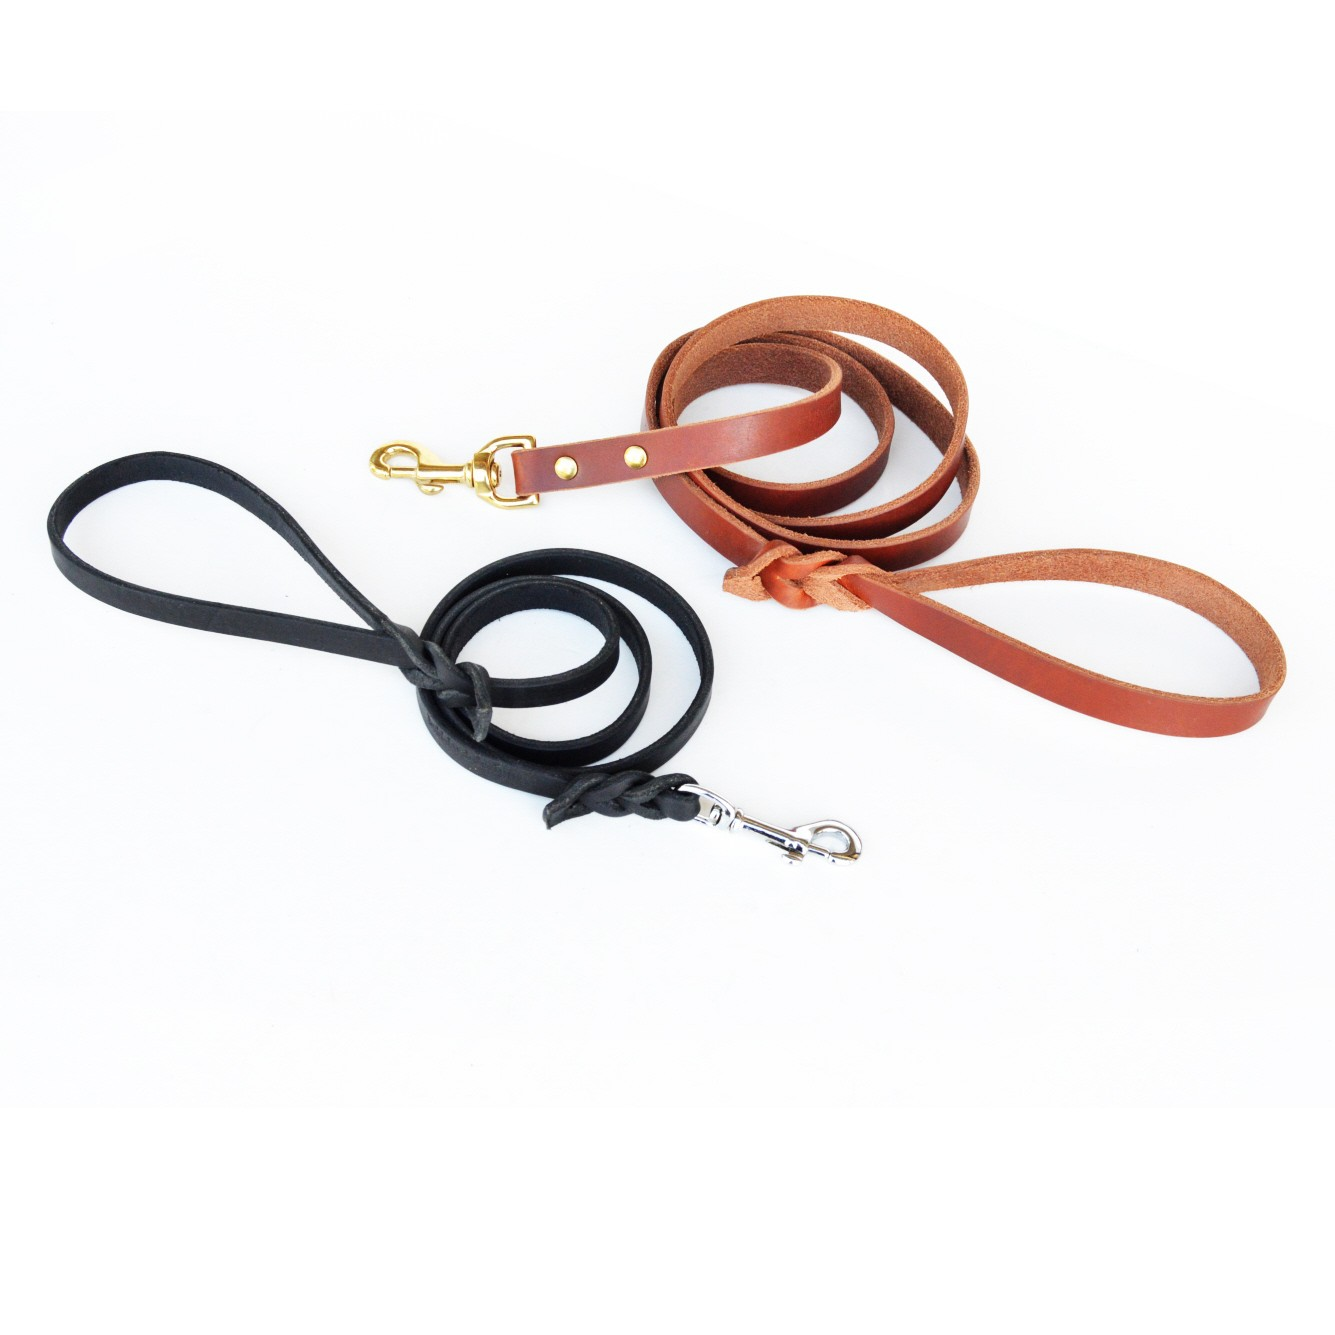 11 Colors Double Dog Walking with 1 Leash 4 Widths All Sizes Made in USA Handcrafted Basic Dog Leash Coupler for Walking Two Dogs